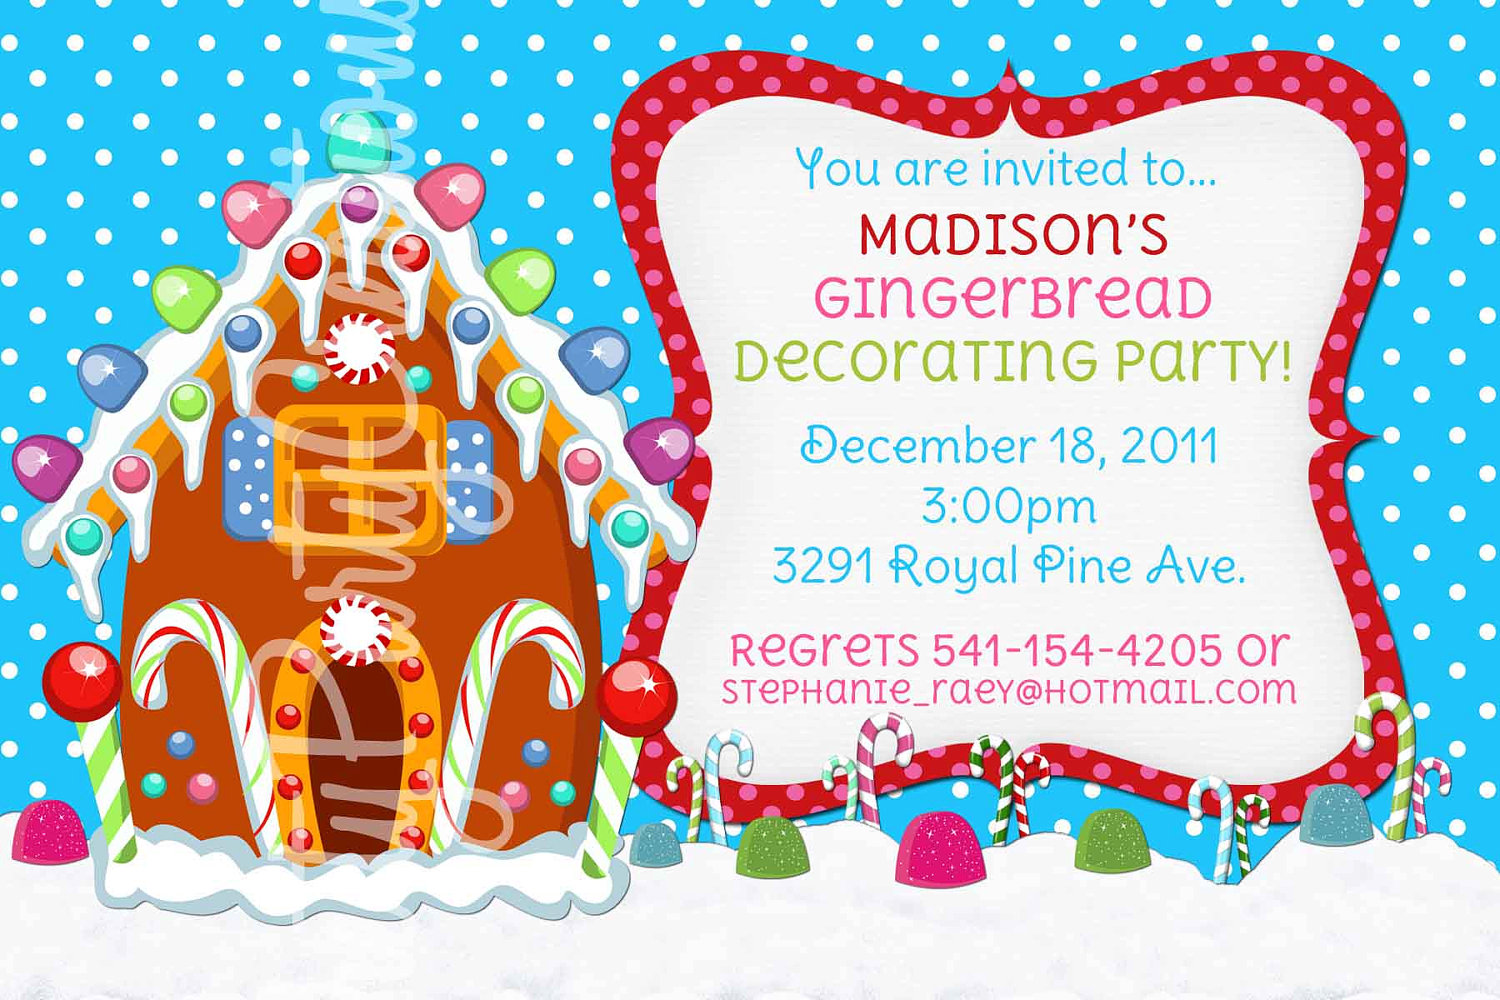 Gingerbread House Invitation Printable by ThatPartyChick on Etsy.